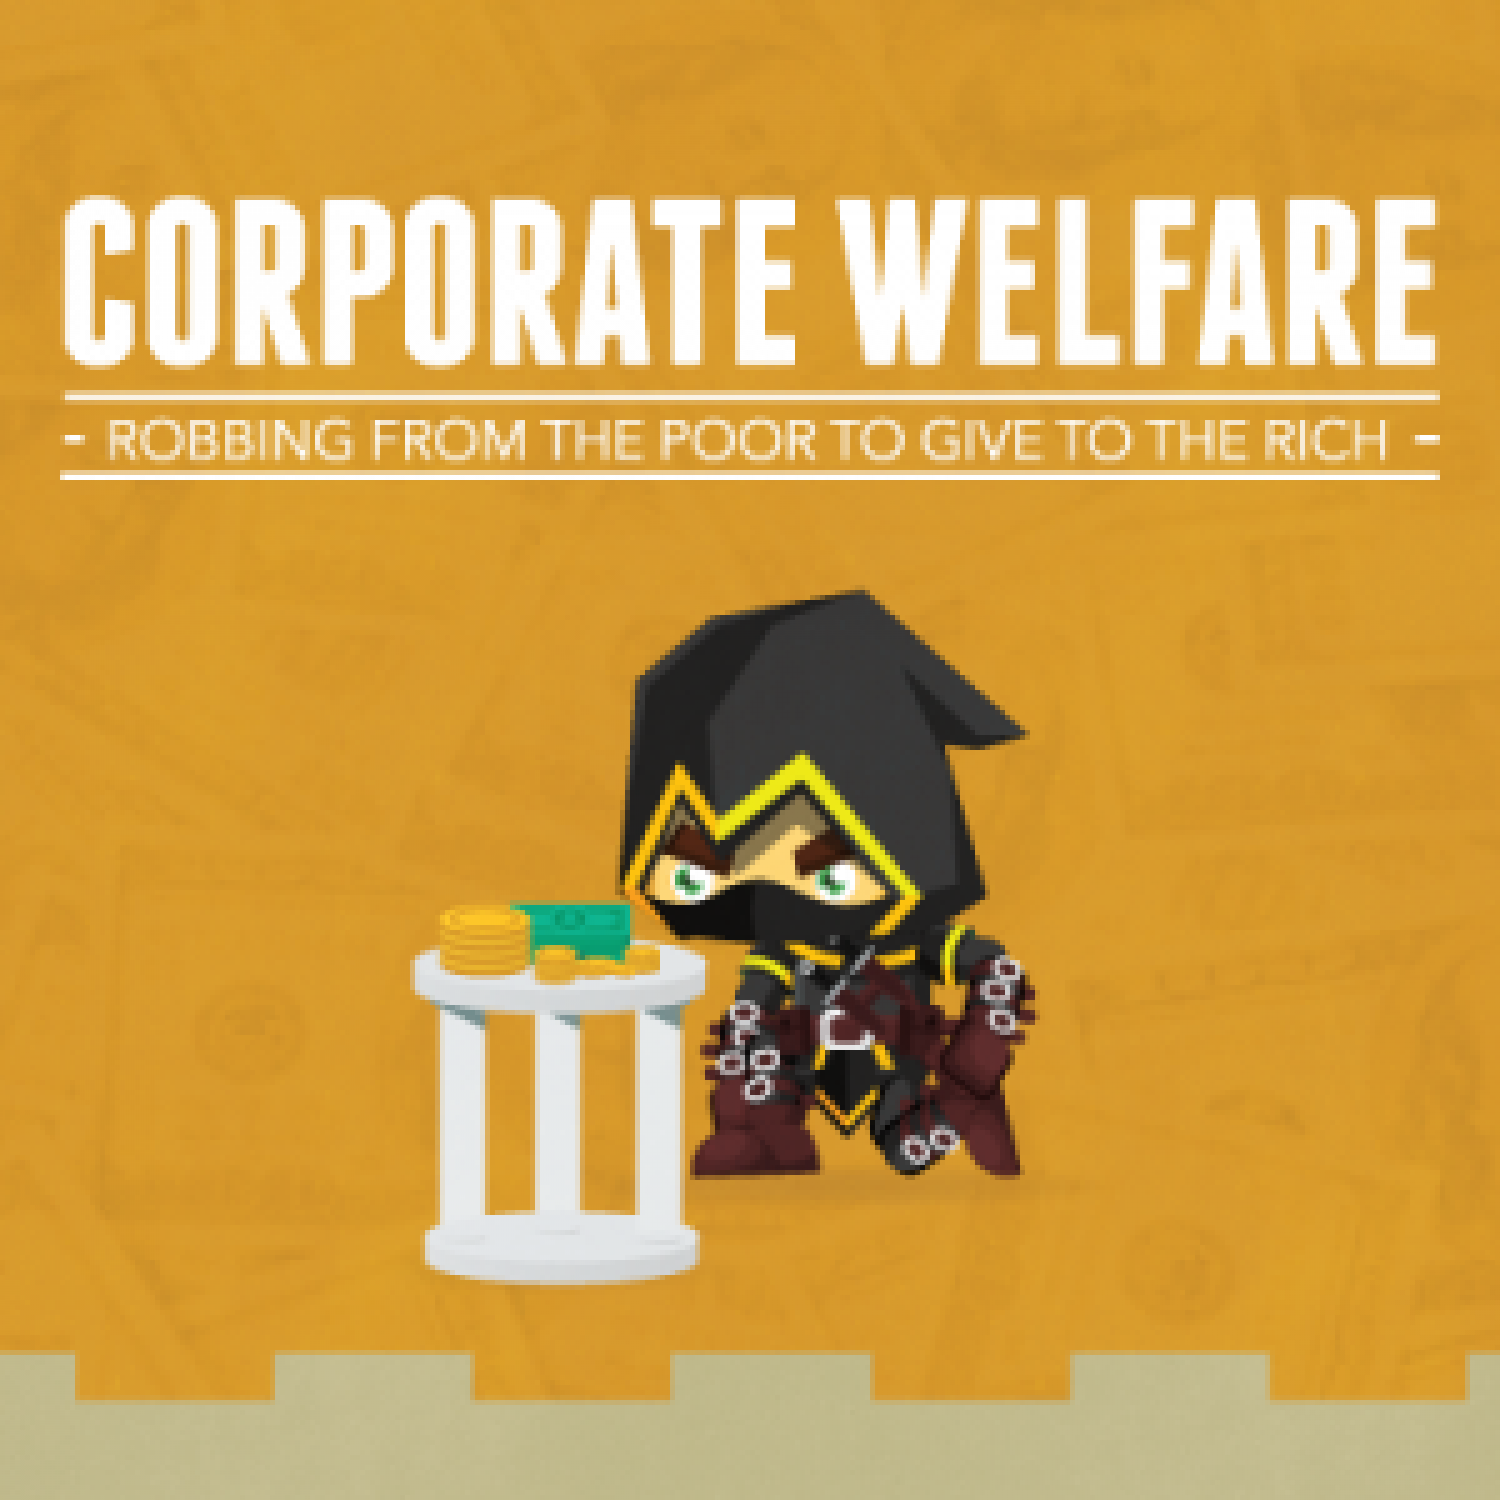 Corporate Welfare vs Actual Welfare Infographic